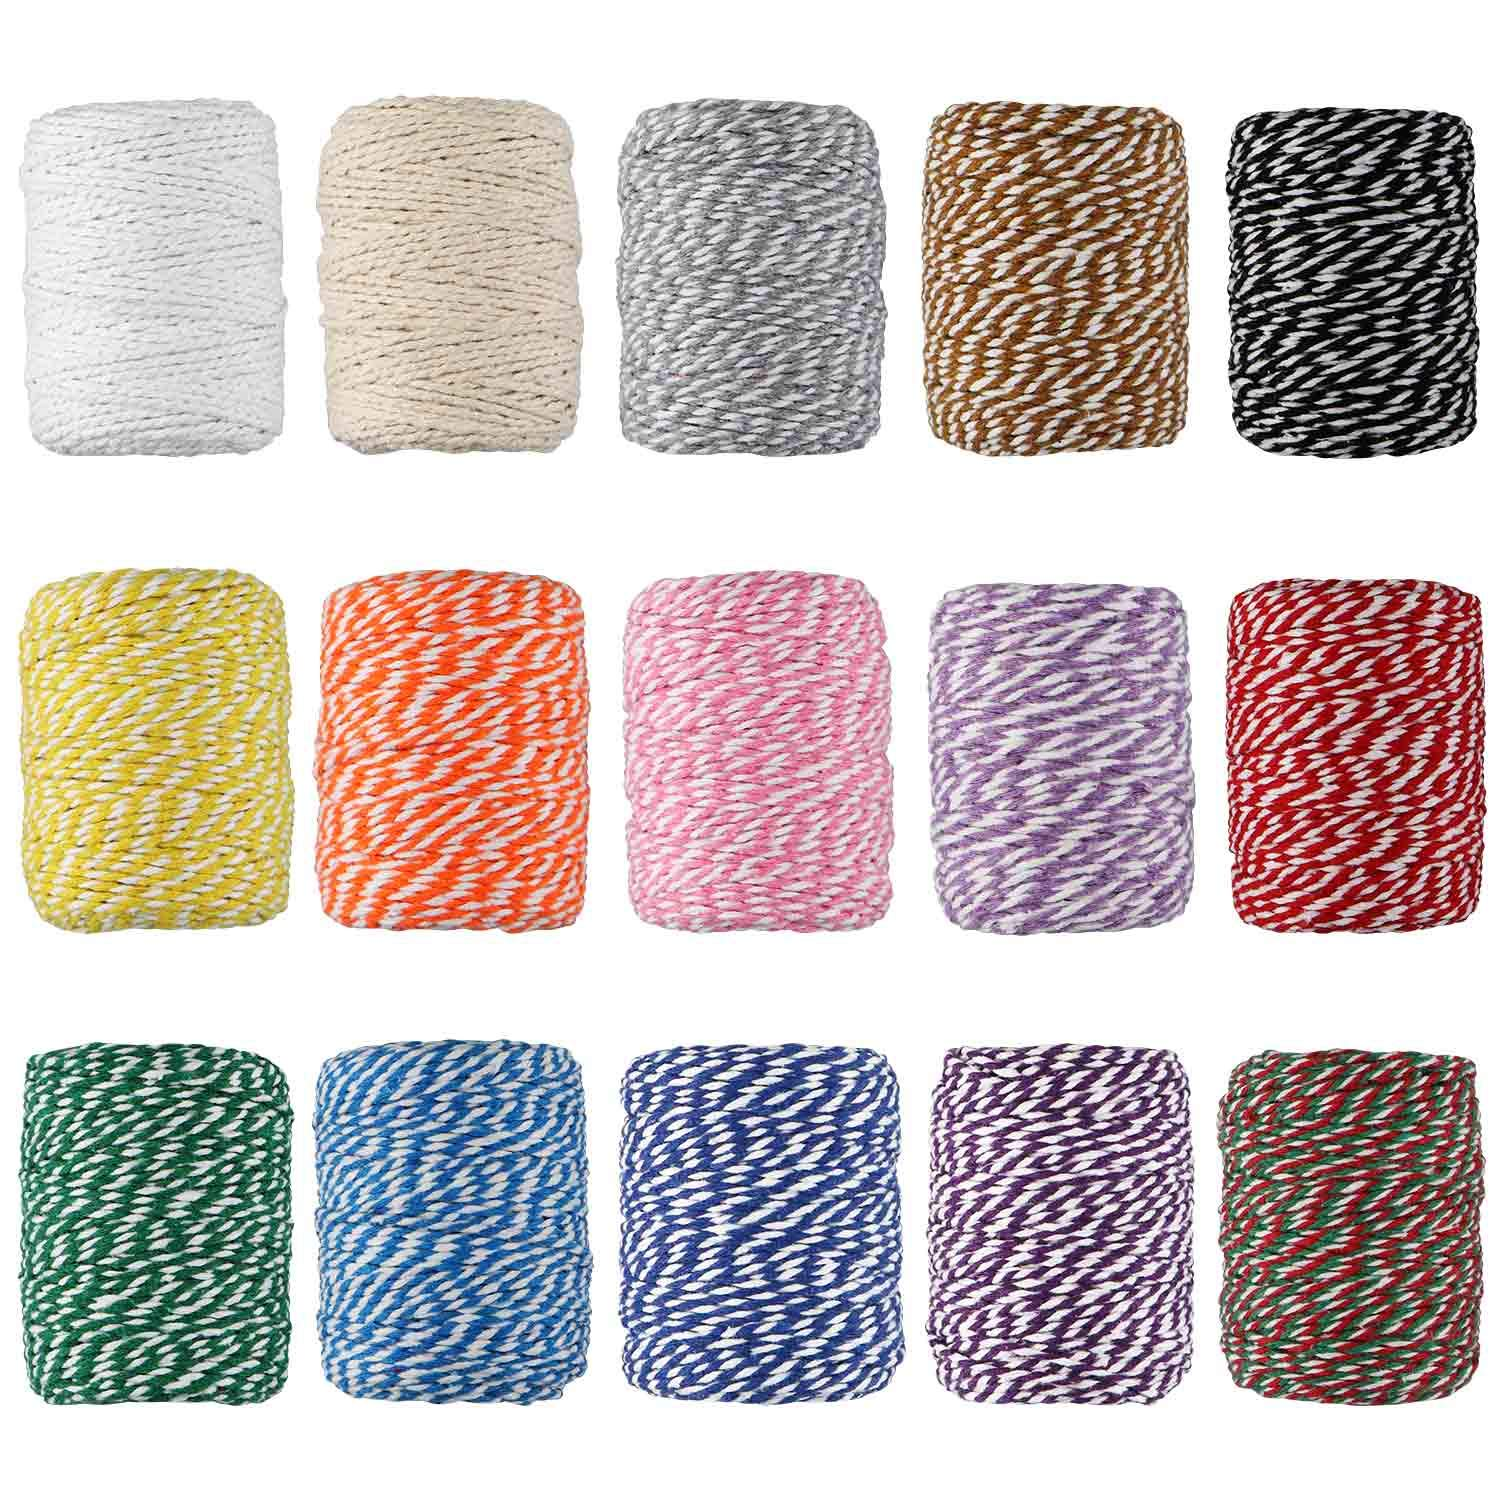 Cotton Bakers Twine, HULISEN 15 Rolls Colourful Twine String for Artworks, DIY Crafts, Gift Wrapping, Picture Display and Embellishments by HULISEN